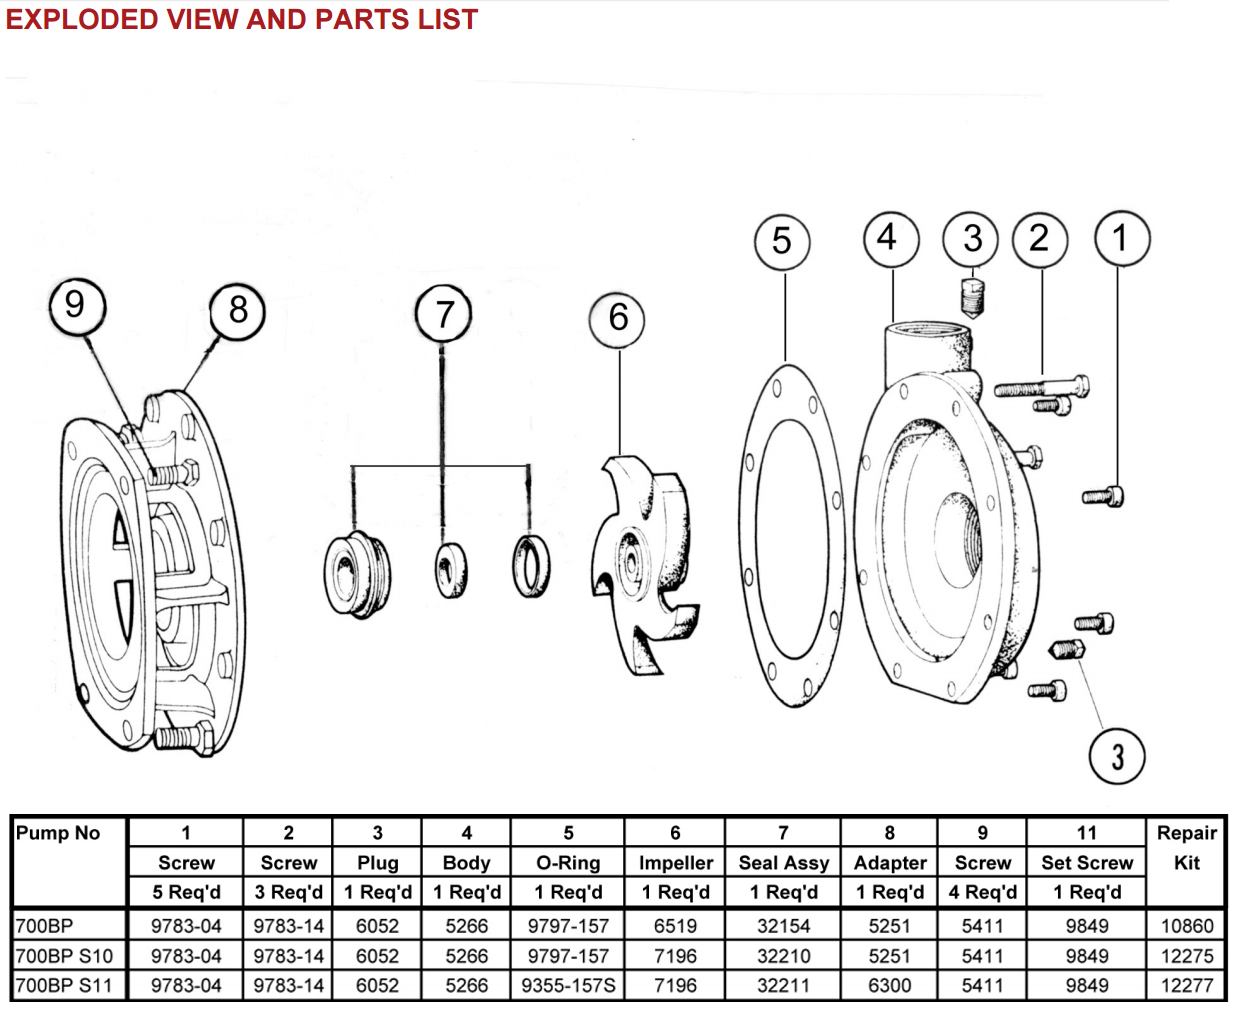 Oberdorfer 700BP Exploded view and Parts list